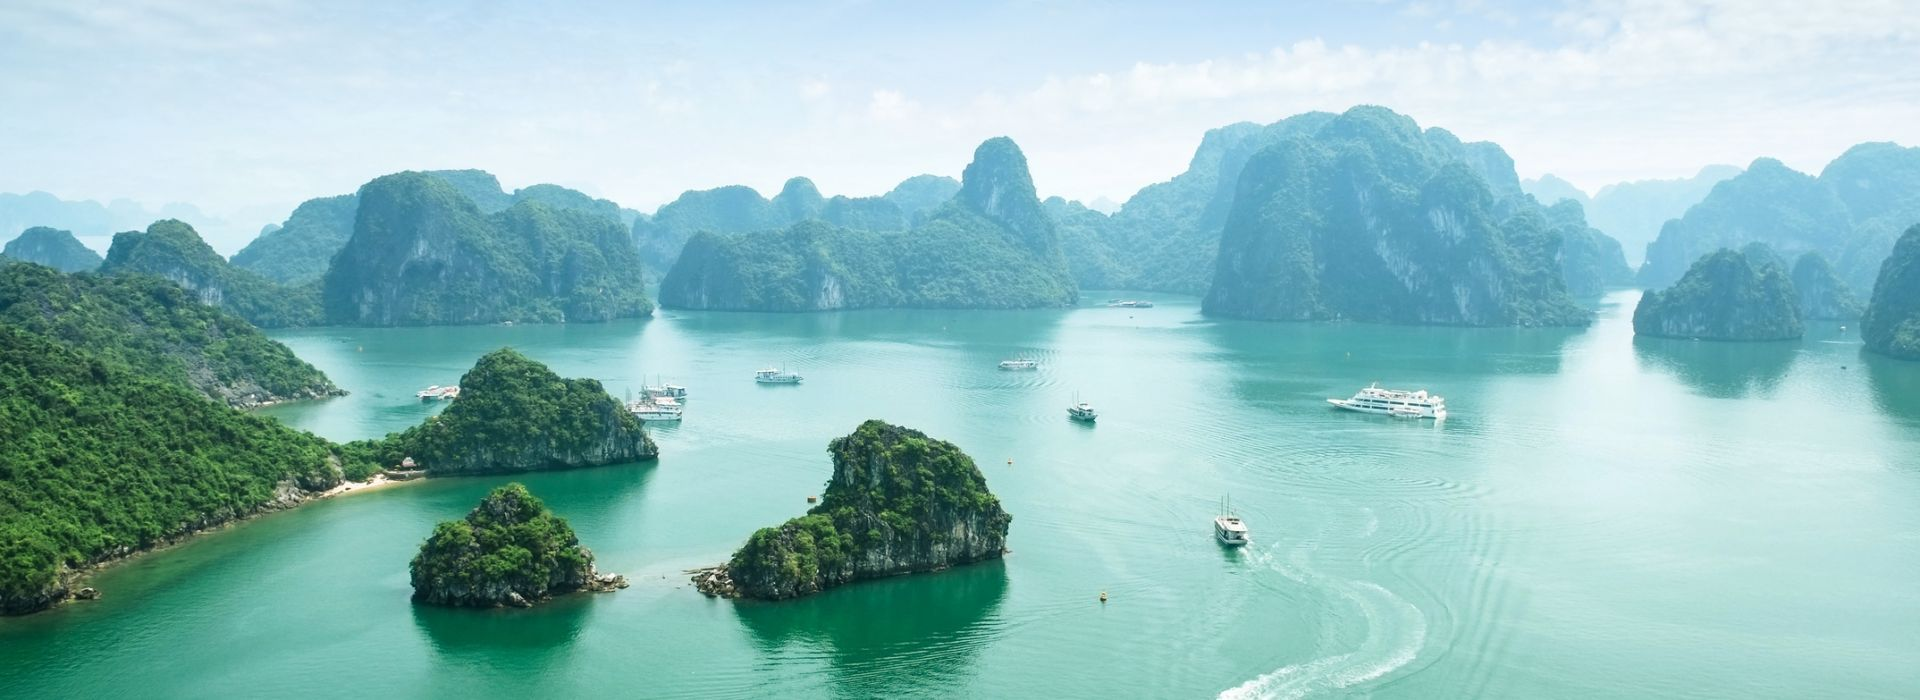 Beach, romance, getaways and relaxation Tours in Vietnam